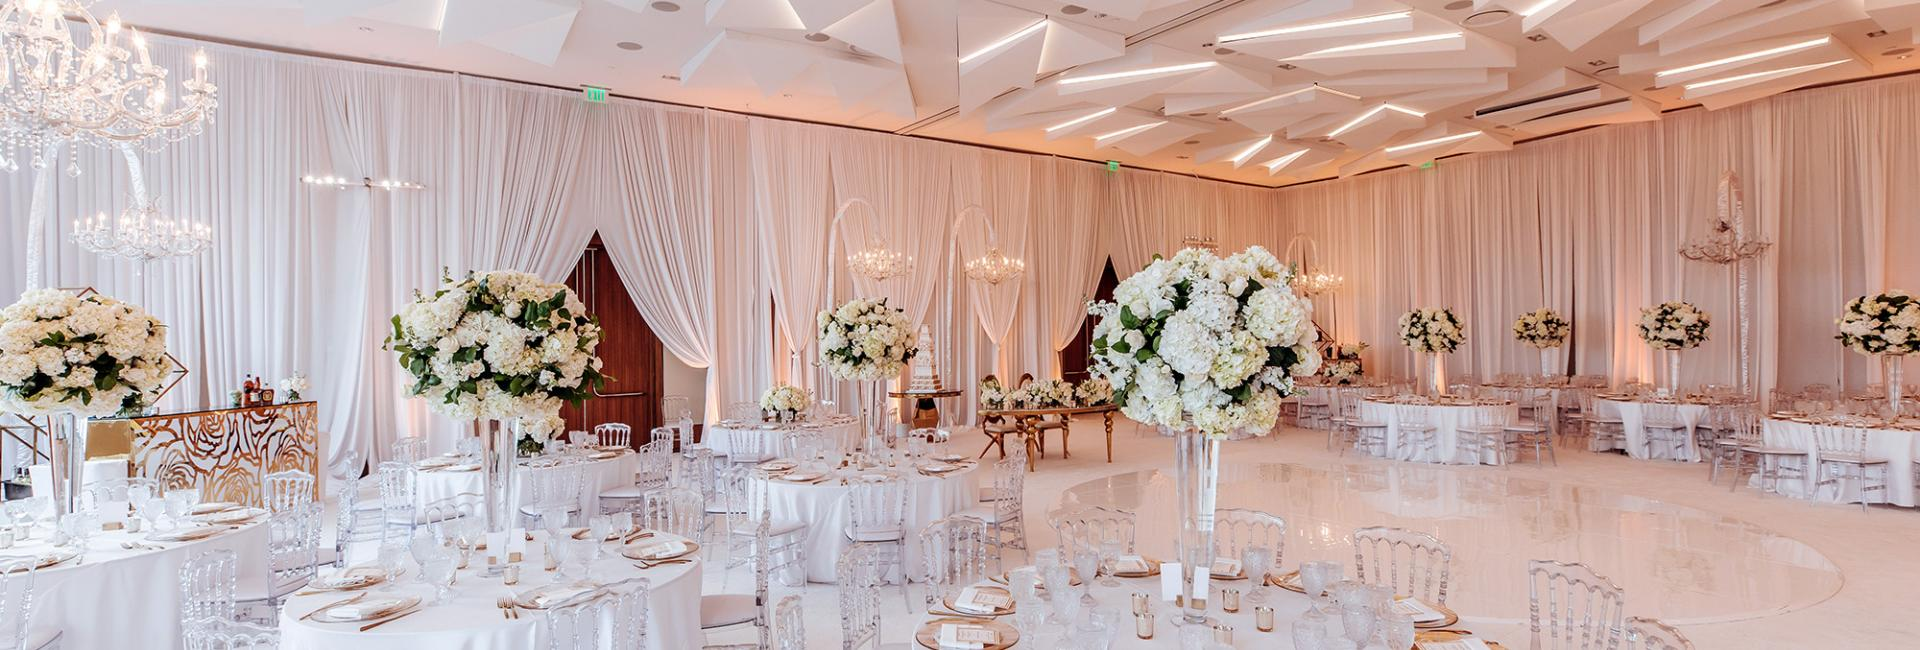 wedding venue decorated in white at the Jeremy Hotel West Hollywood